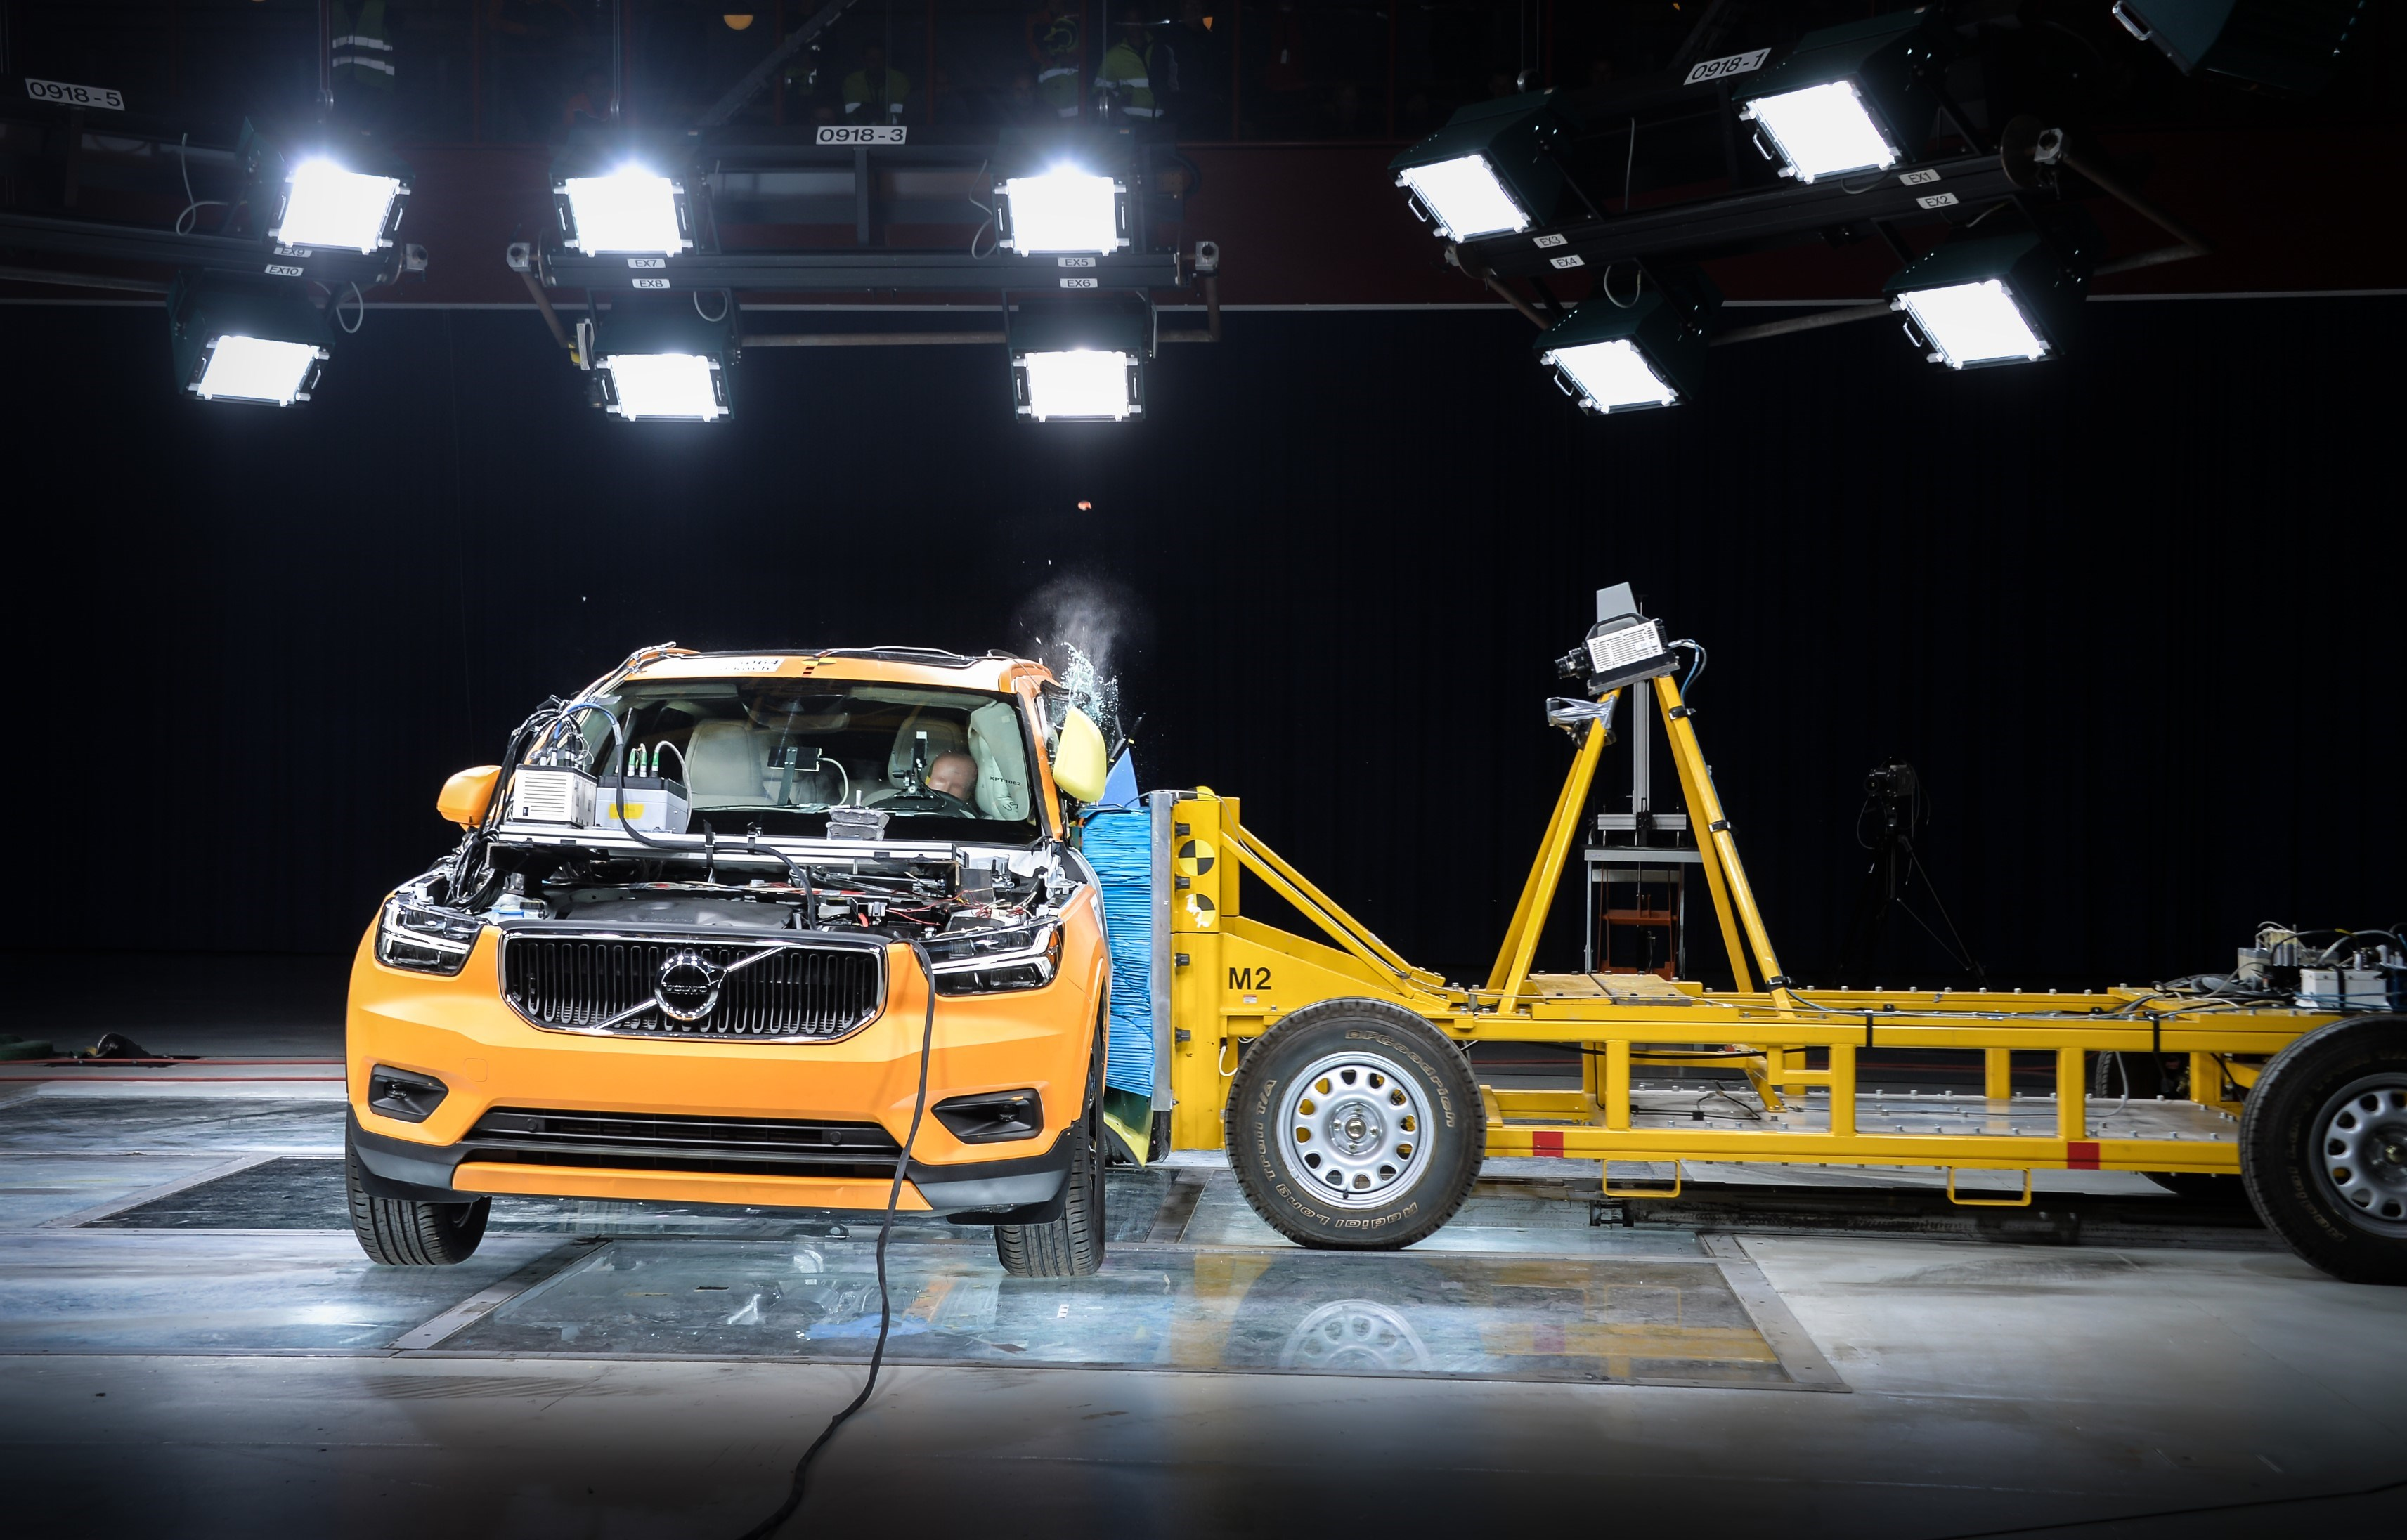 """It's a Volvo, so you can be <a href=""""https://arstechnica.com/cars/2019/03/in-1959-volvo-gave-us-the-seat-belt-heres-what-its-safety-team-is-building-now/"""">pretty sure it's going to be safe</a>."""